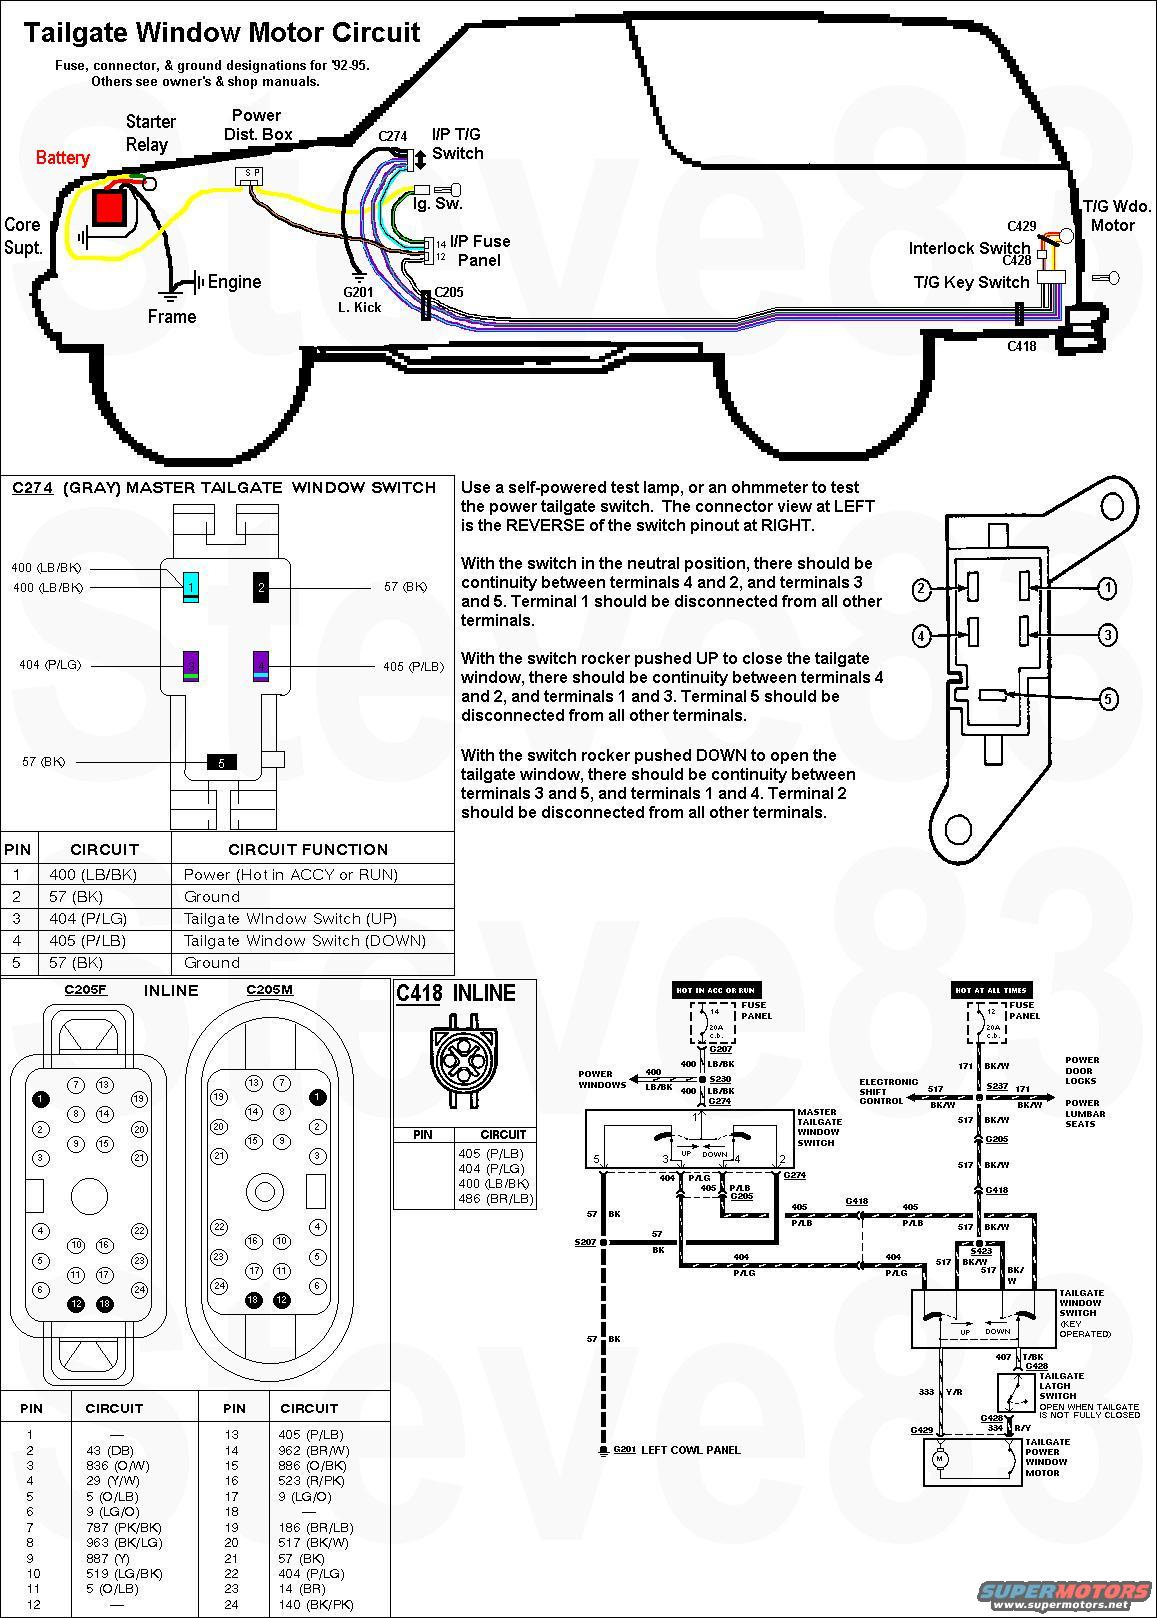 1990 ford bronco wiring diagram many to relationship 89 ii engine get free image